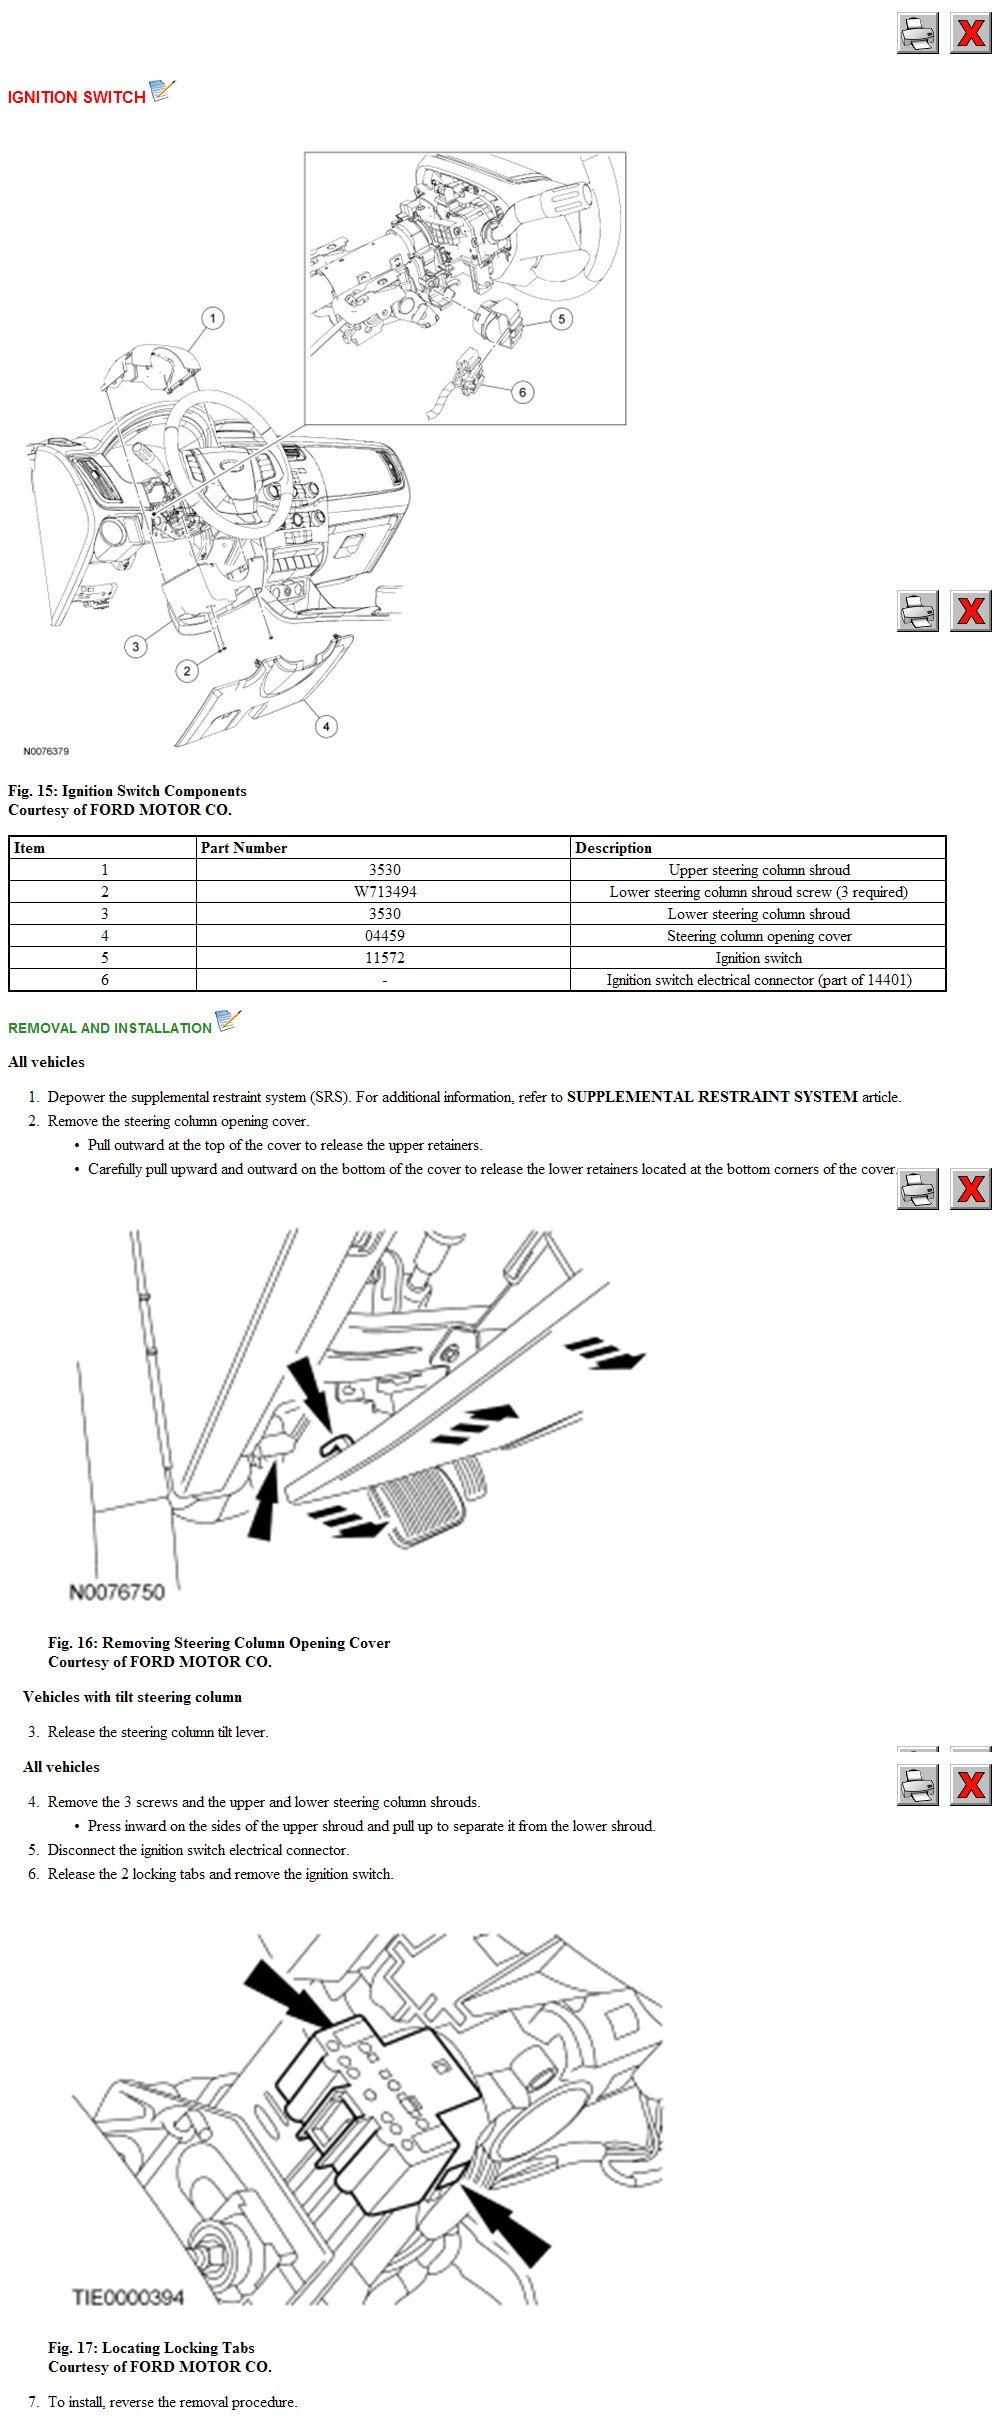 how can you remove the ignition cylinder from a 2008 ford